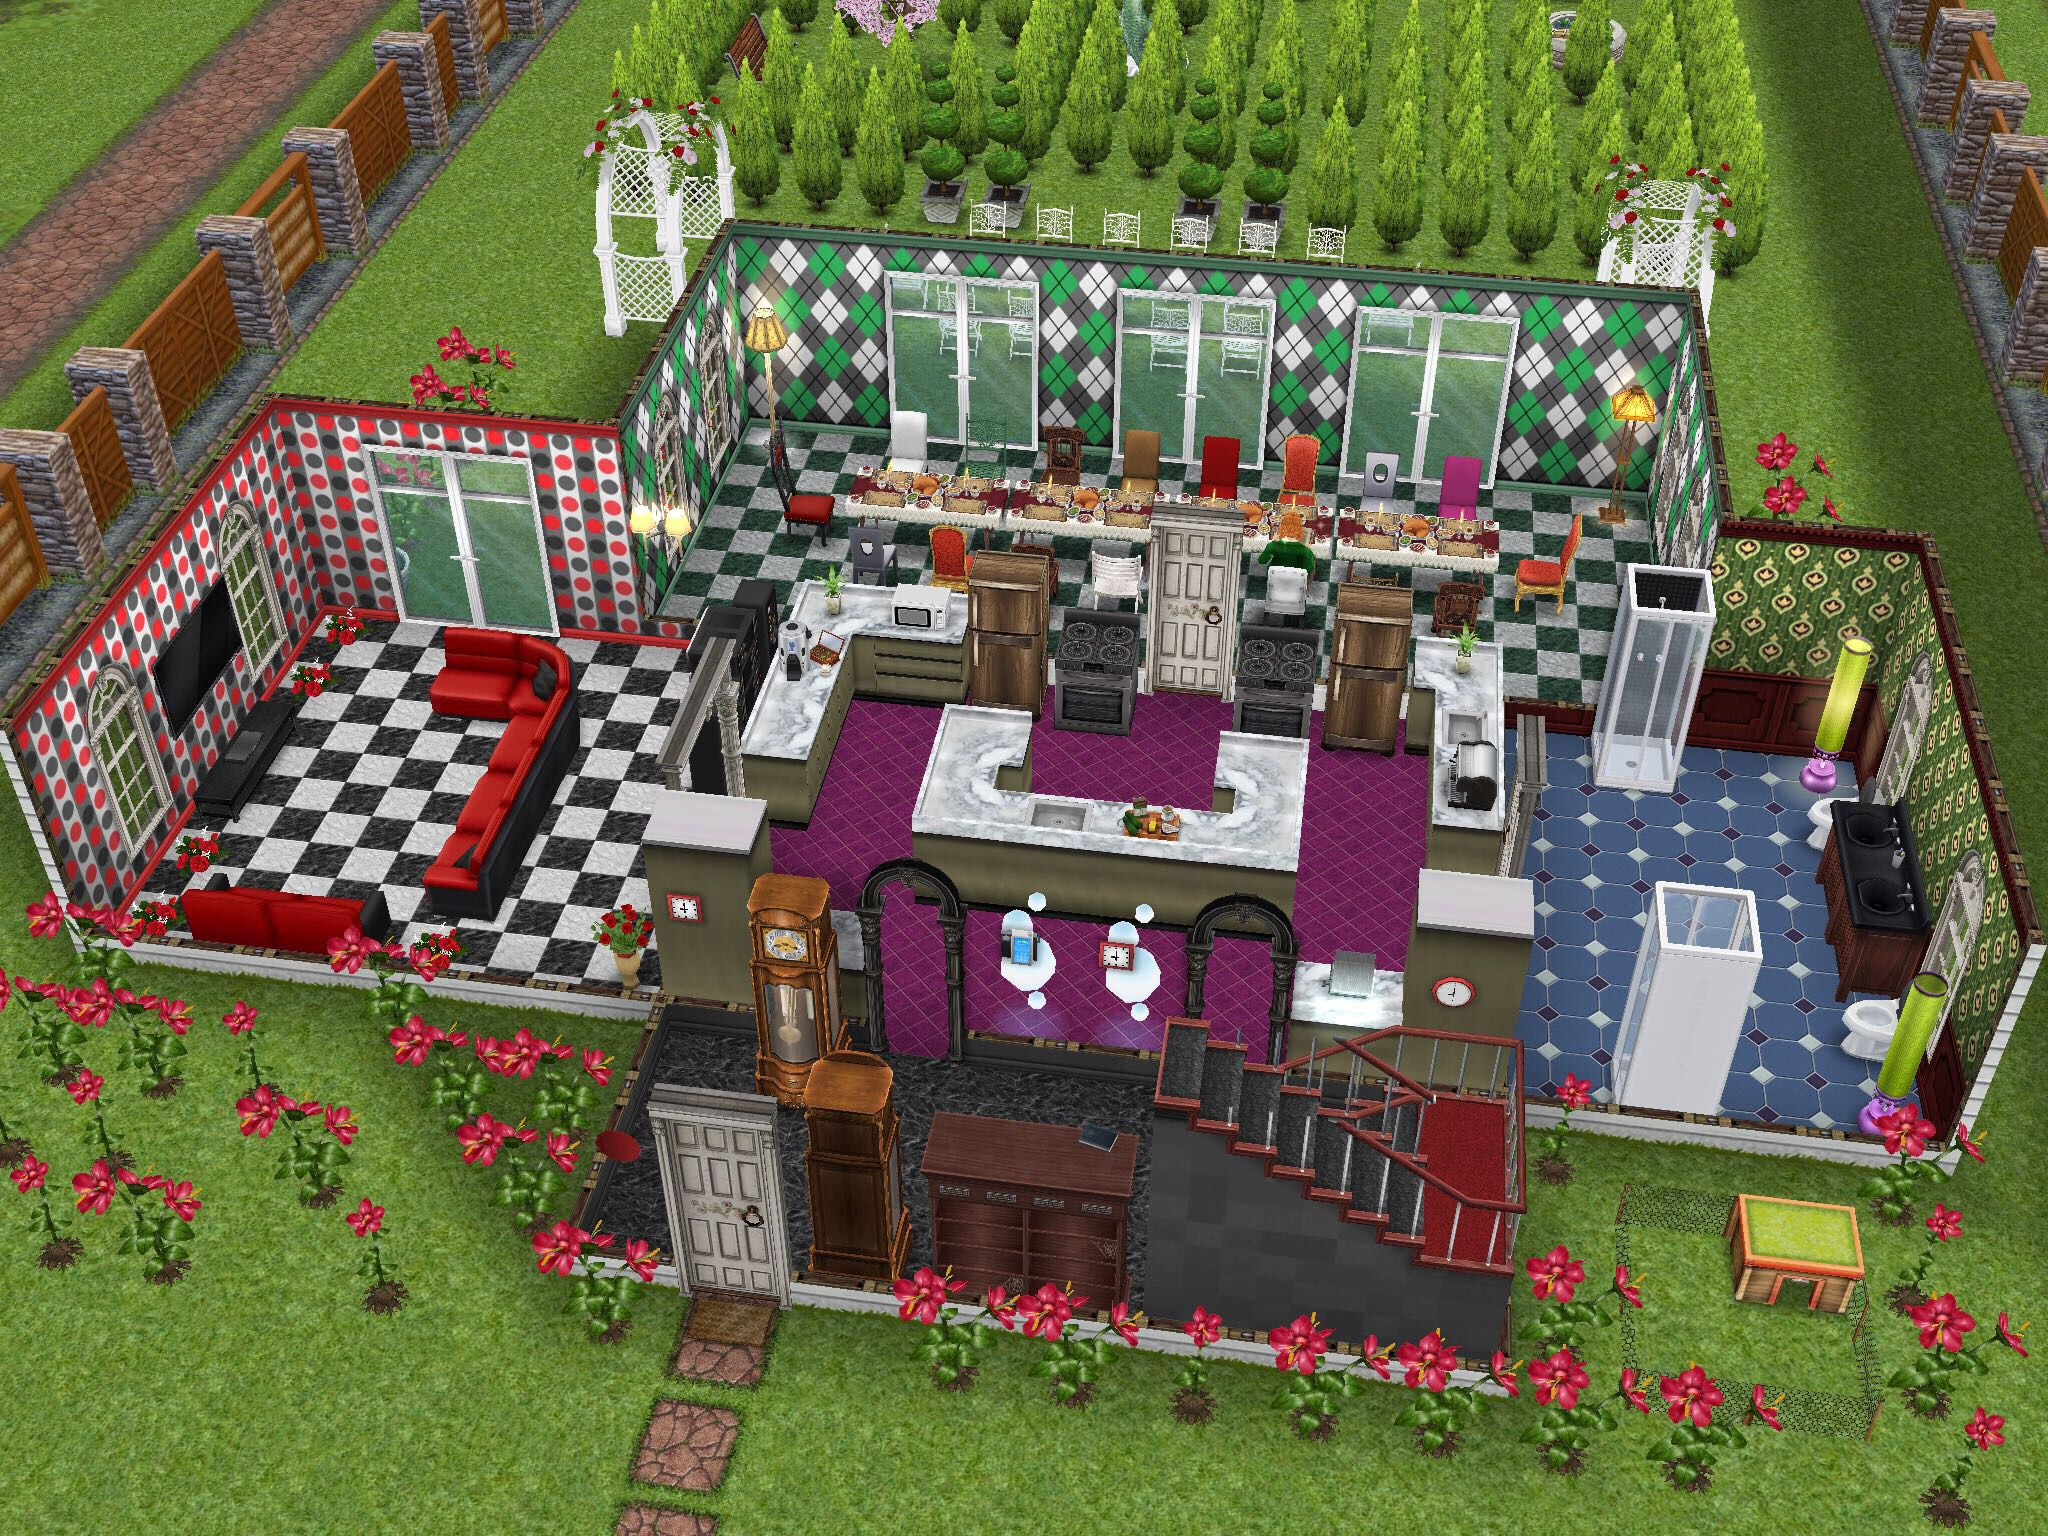 alice in wonderland inspired house (part 1) #thesims #simsfreeplay